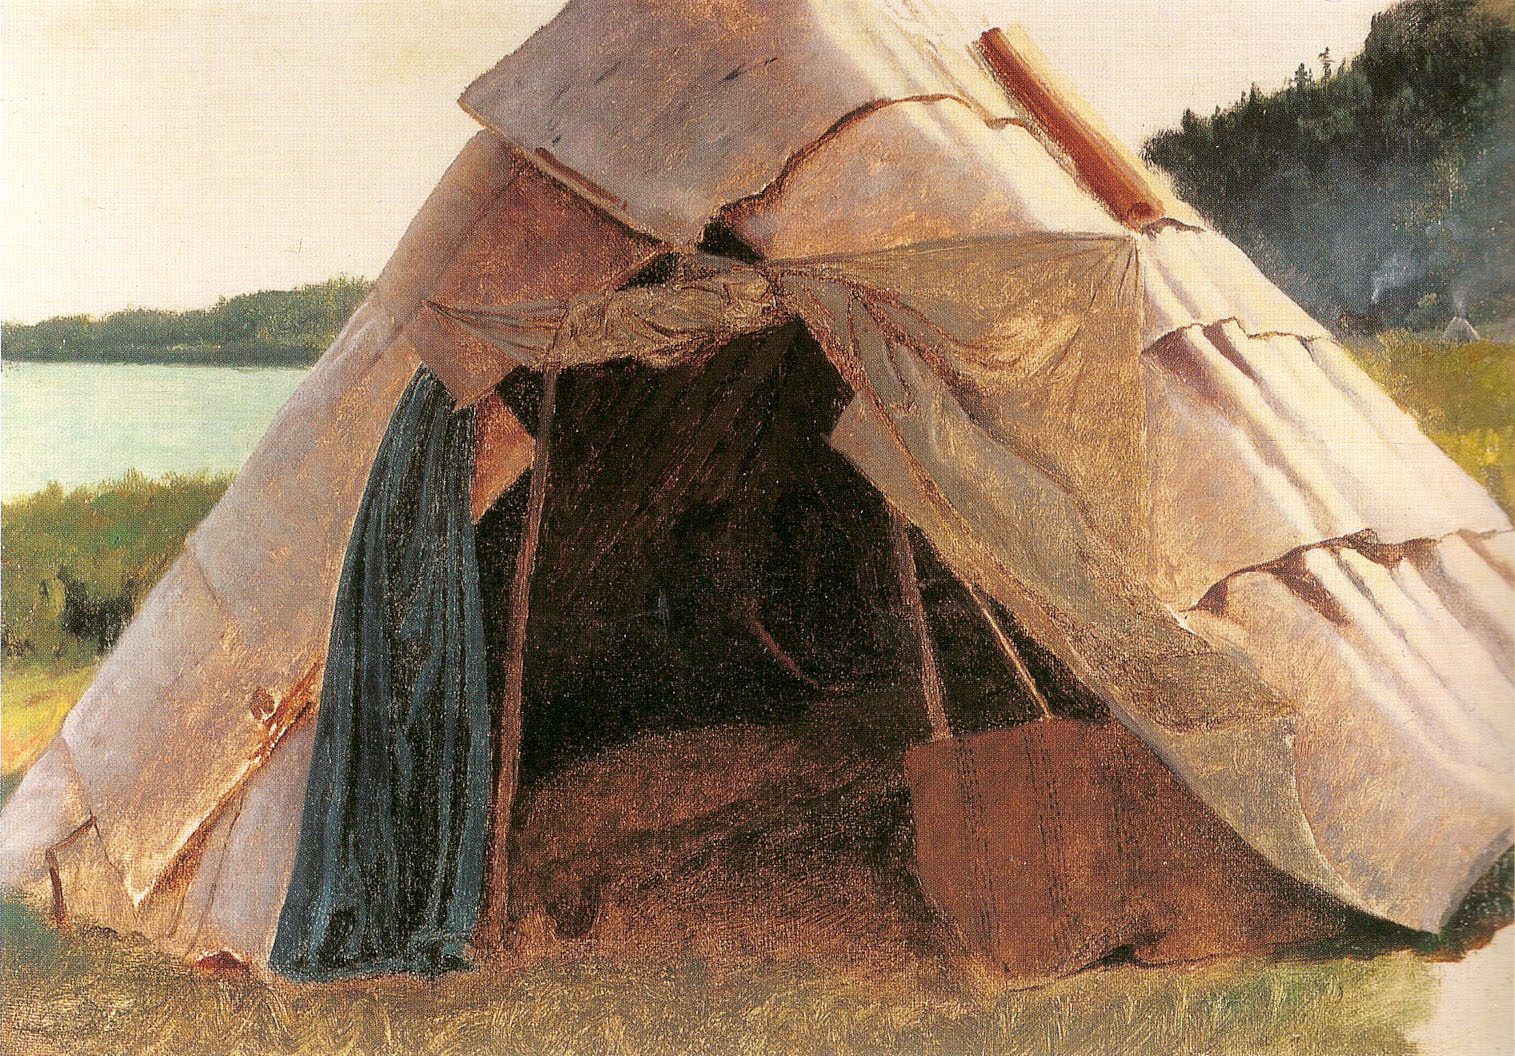 photo of some people in a survival tent